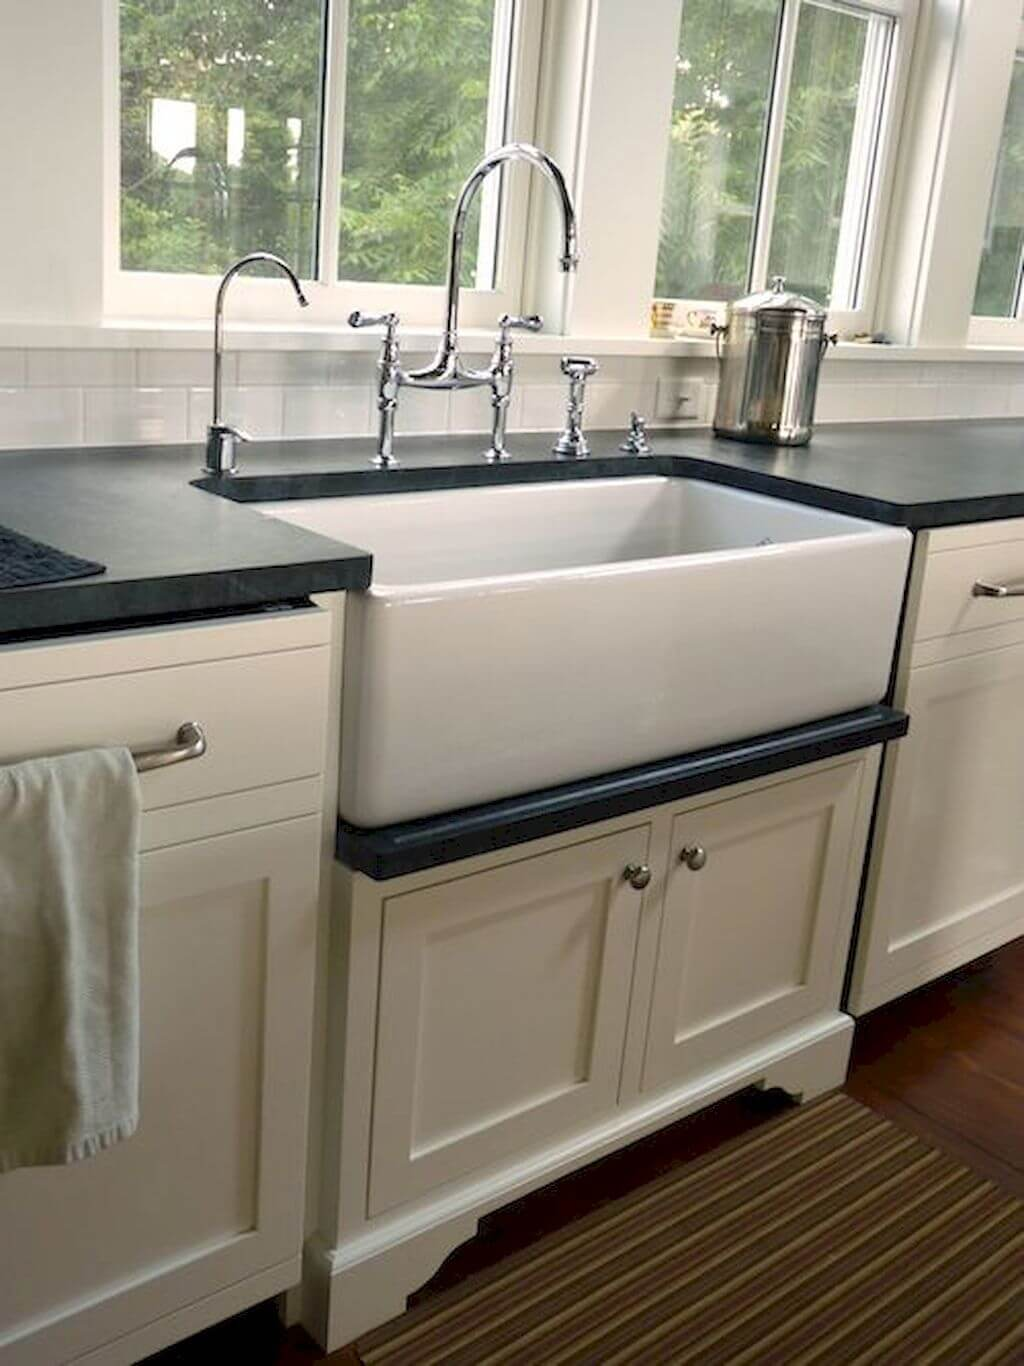 26 farmhouse kitchen sink ideas and designs for 2020 on kitchens with farmhouse sinks id=34446